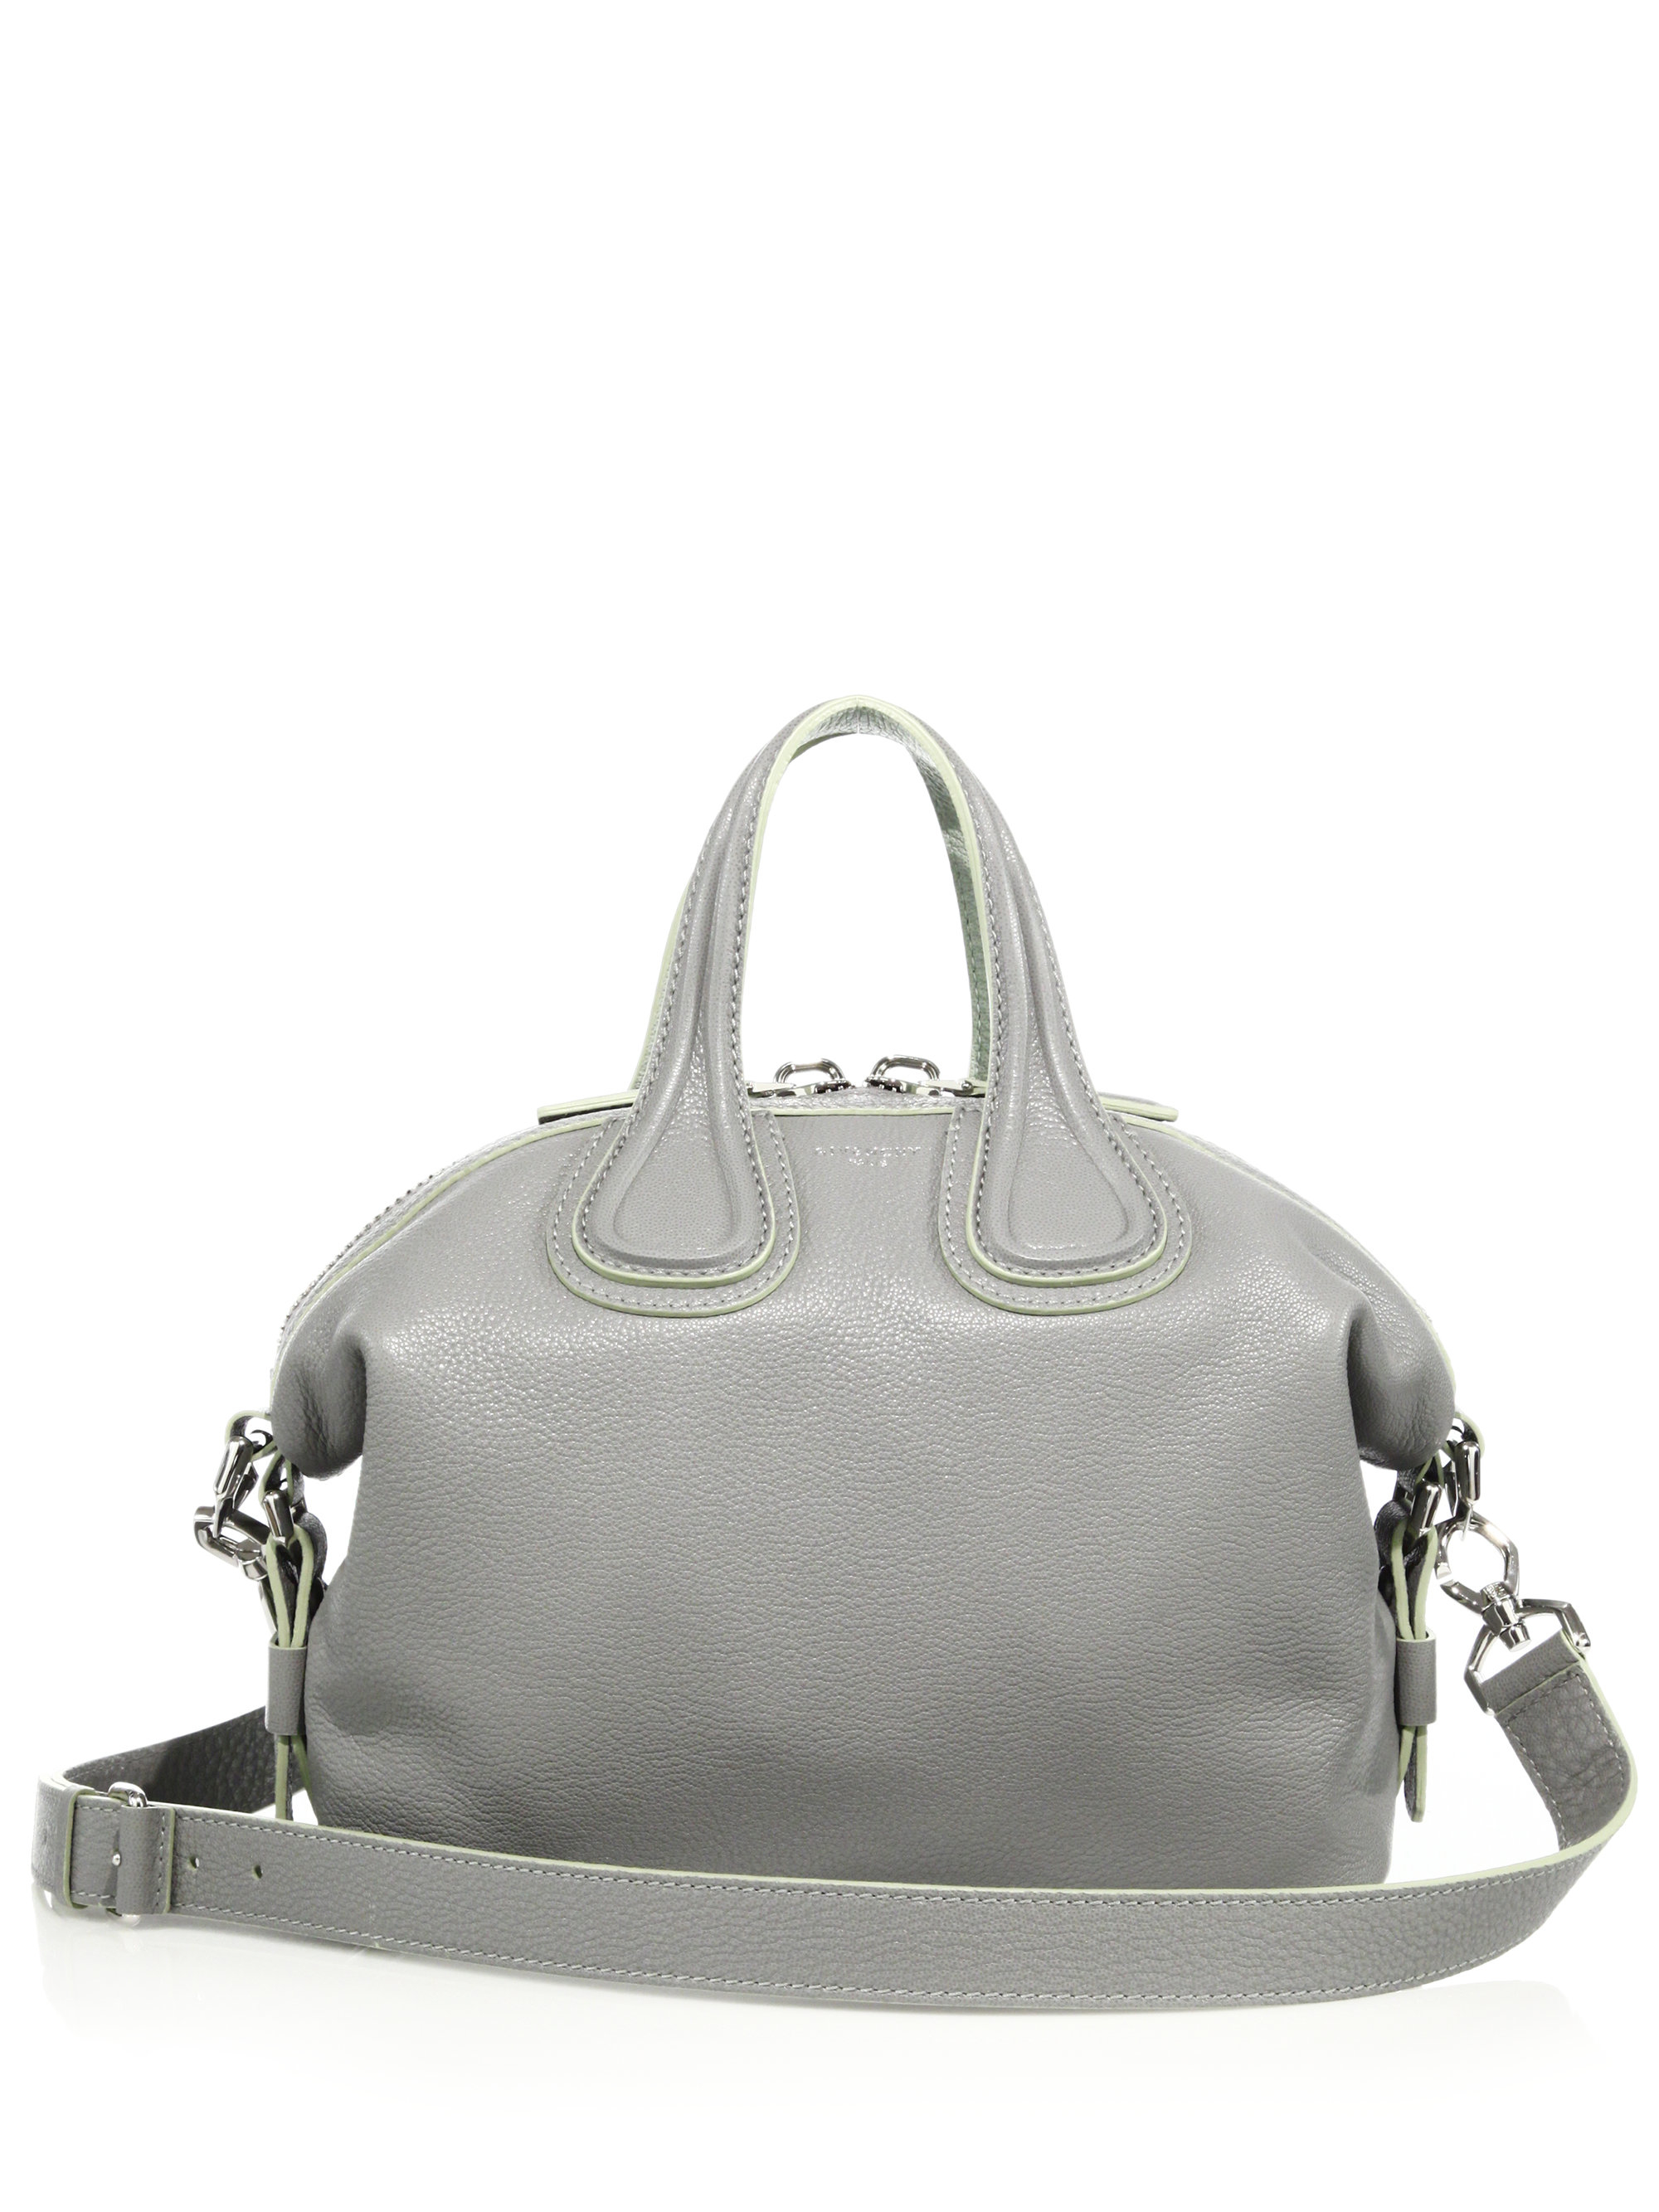 04998671b783 Lyst - Givenchy Nightingale Small Leather Satchel in Gray